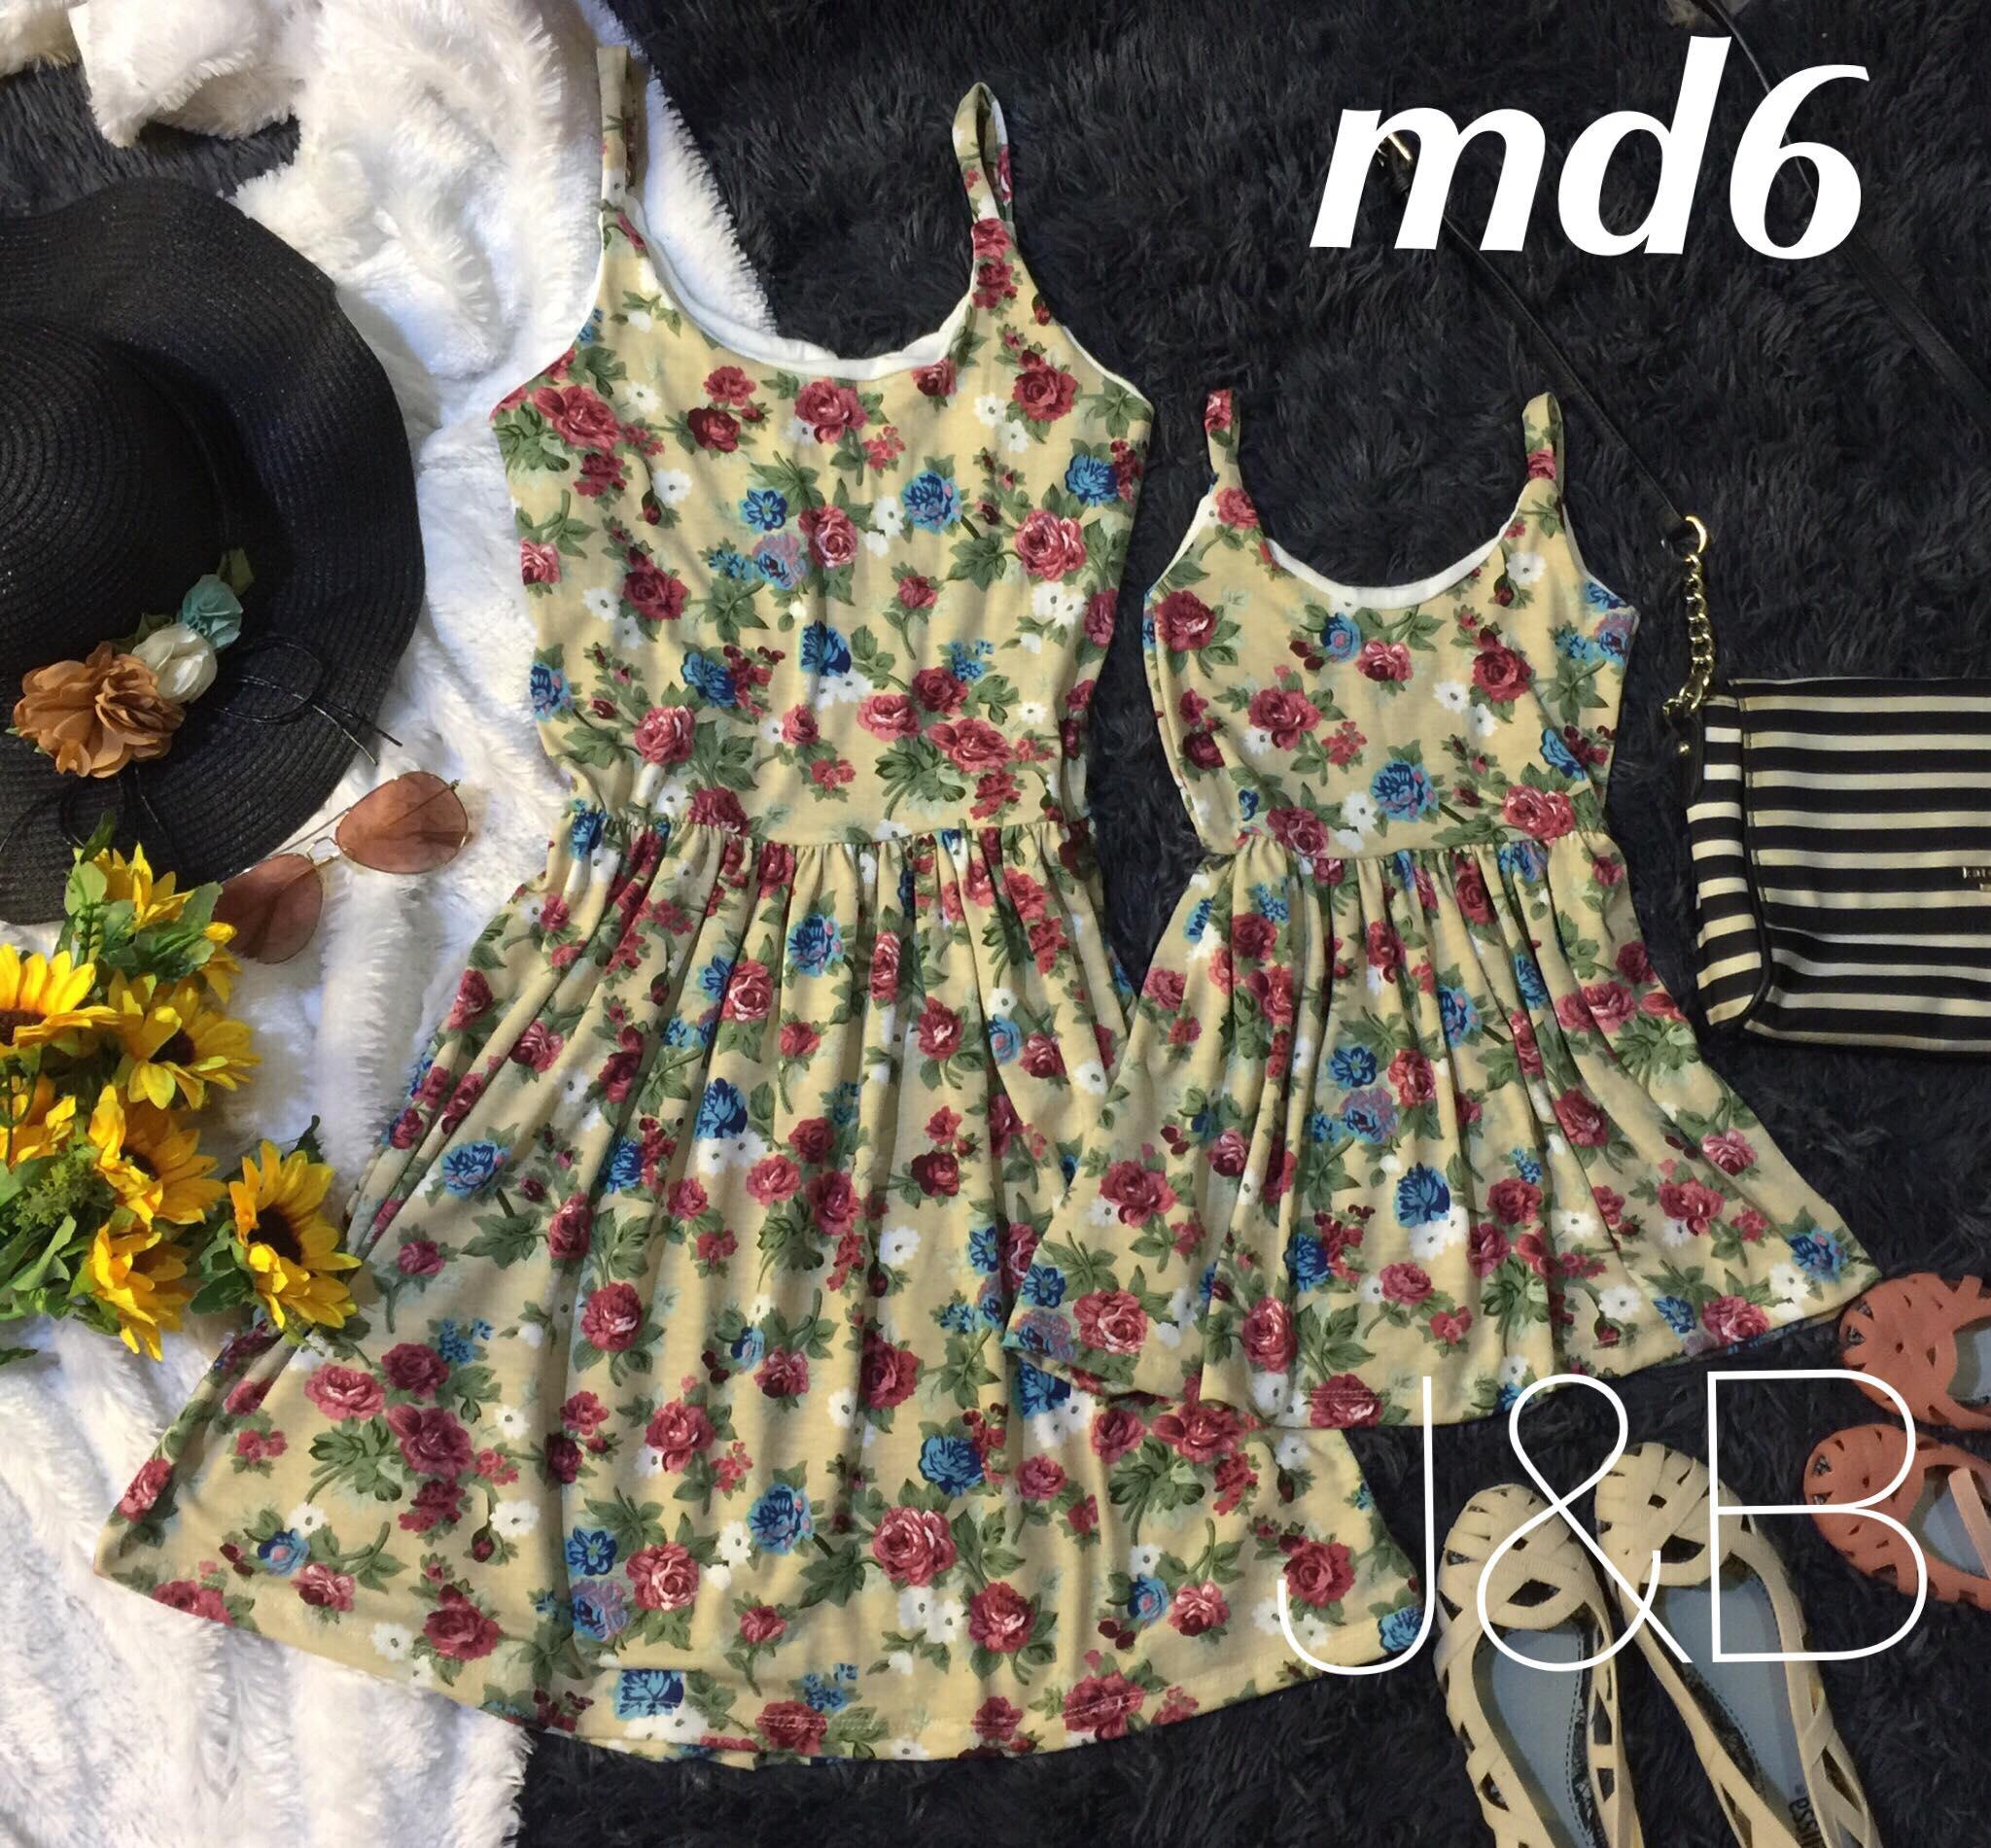 1df94b7b2 Girls Dresses for sale - Baby Dresses for Girls online brands ...